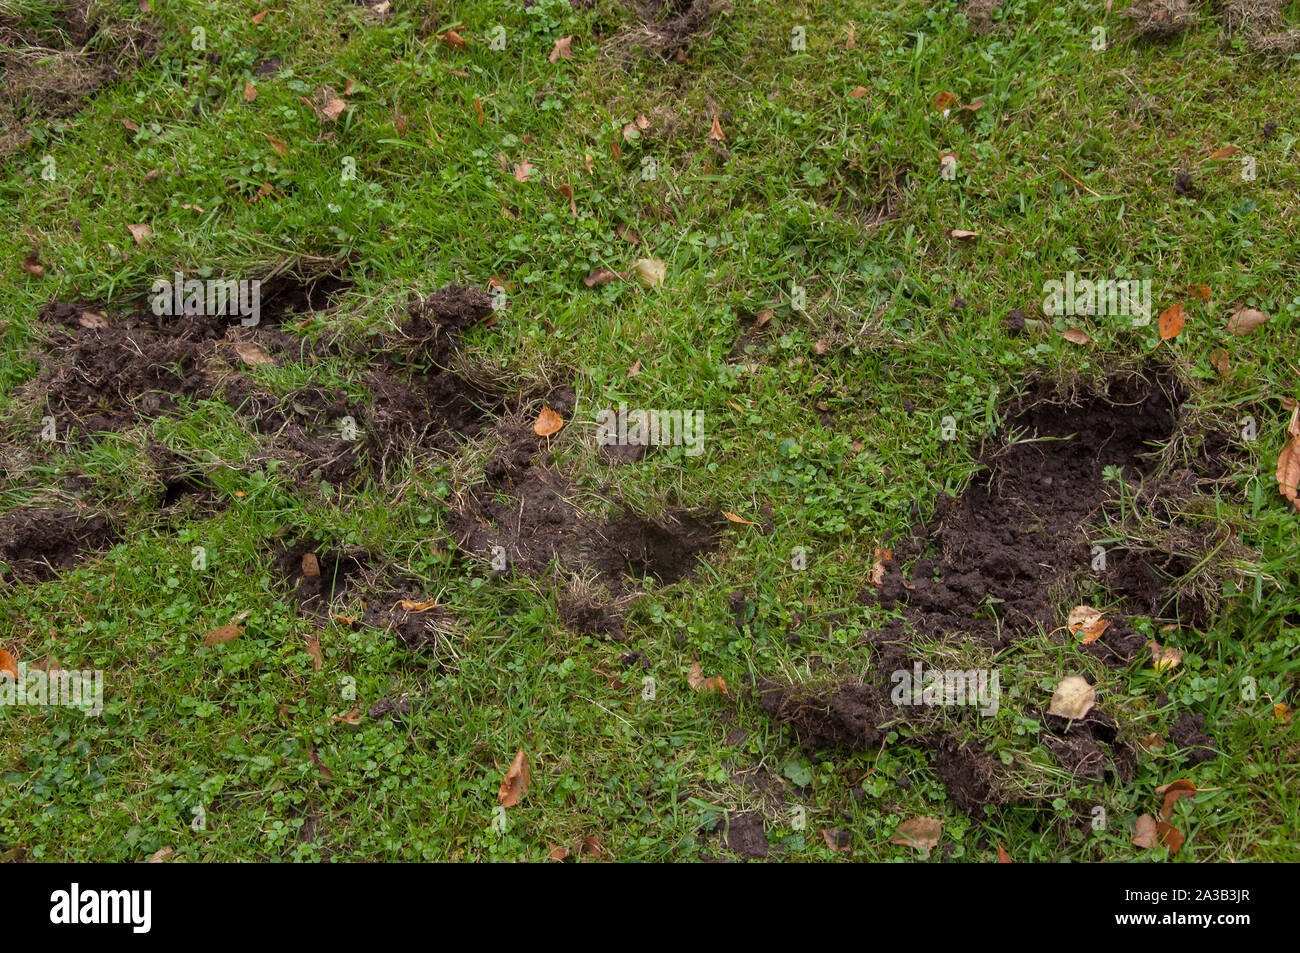 evidence of badger digging in a lawn dumfries sw scotland 2A3B3JR